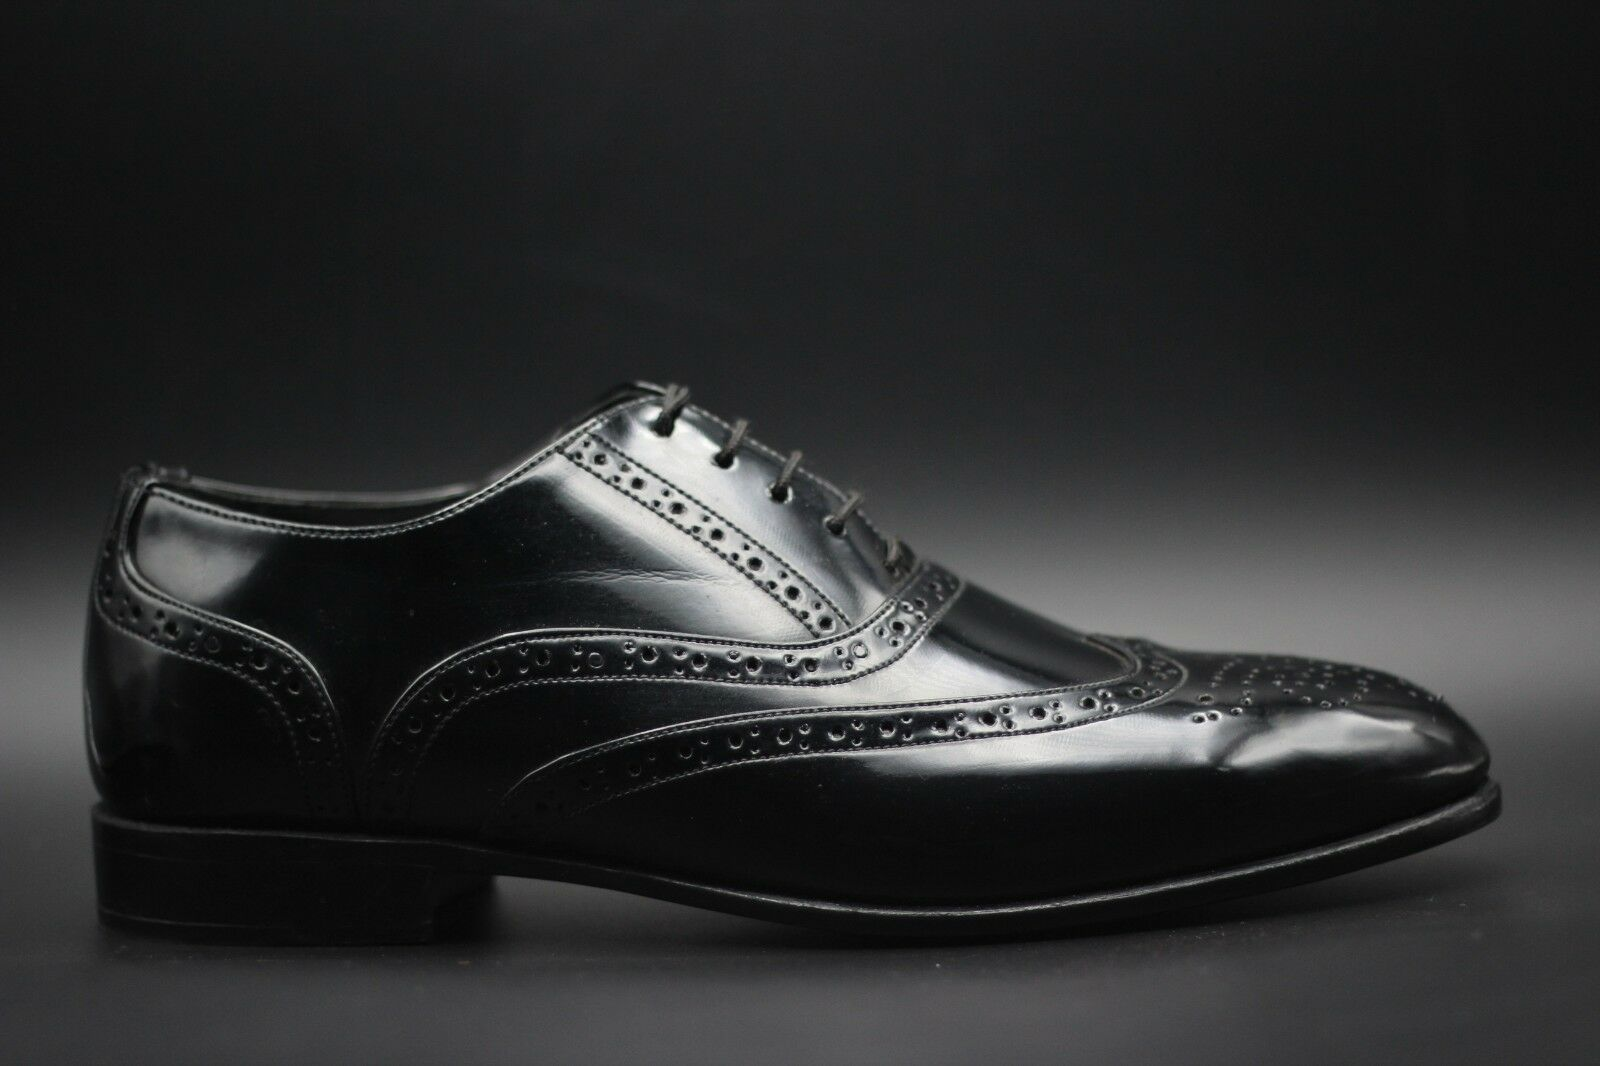 Men's Bespoke Handmade Black Patent Leather Oxford Brogue Wingtip Lace-Up shoes